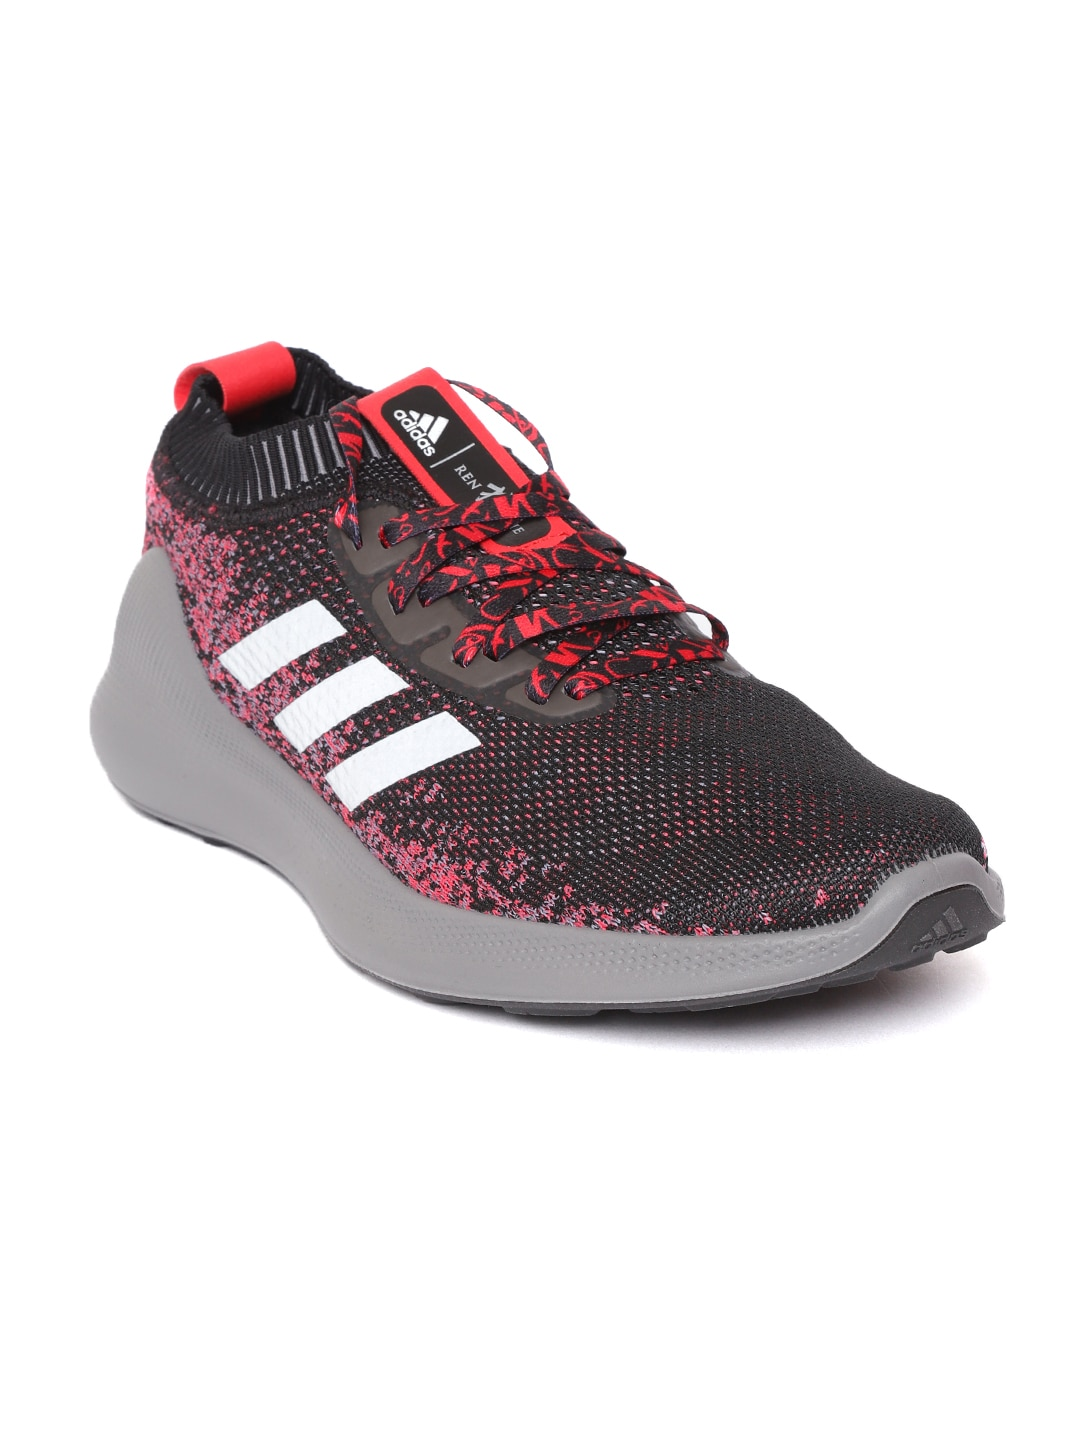 new arrival 92ef7 72d9a Running Shoes - Buy Running Shoes for Men   Women Online   Myntra